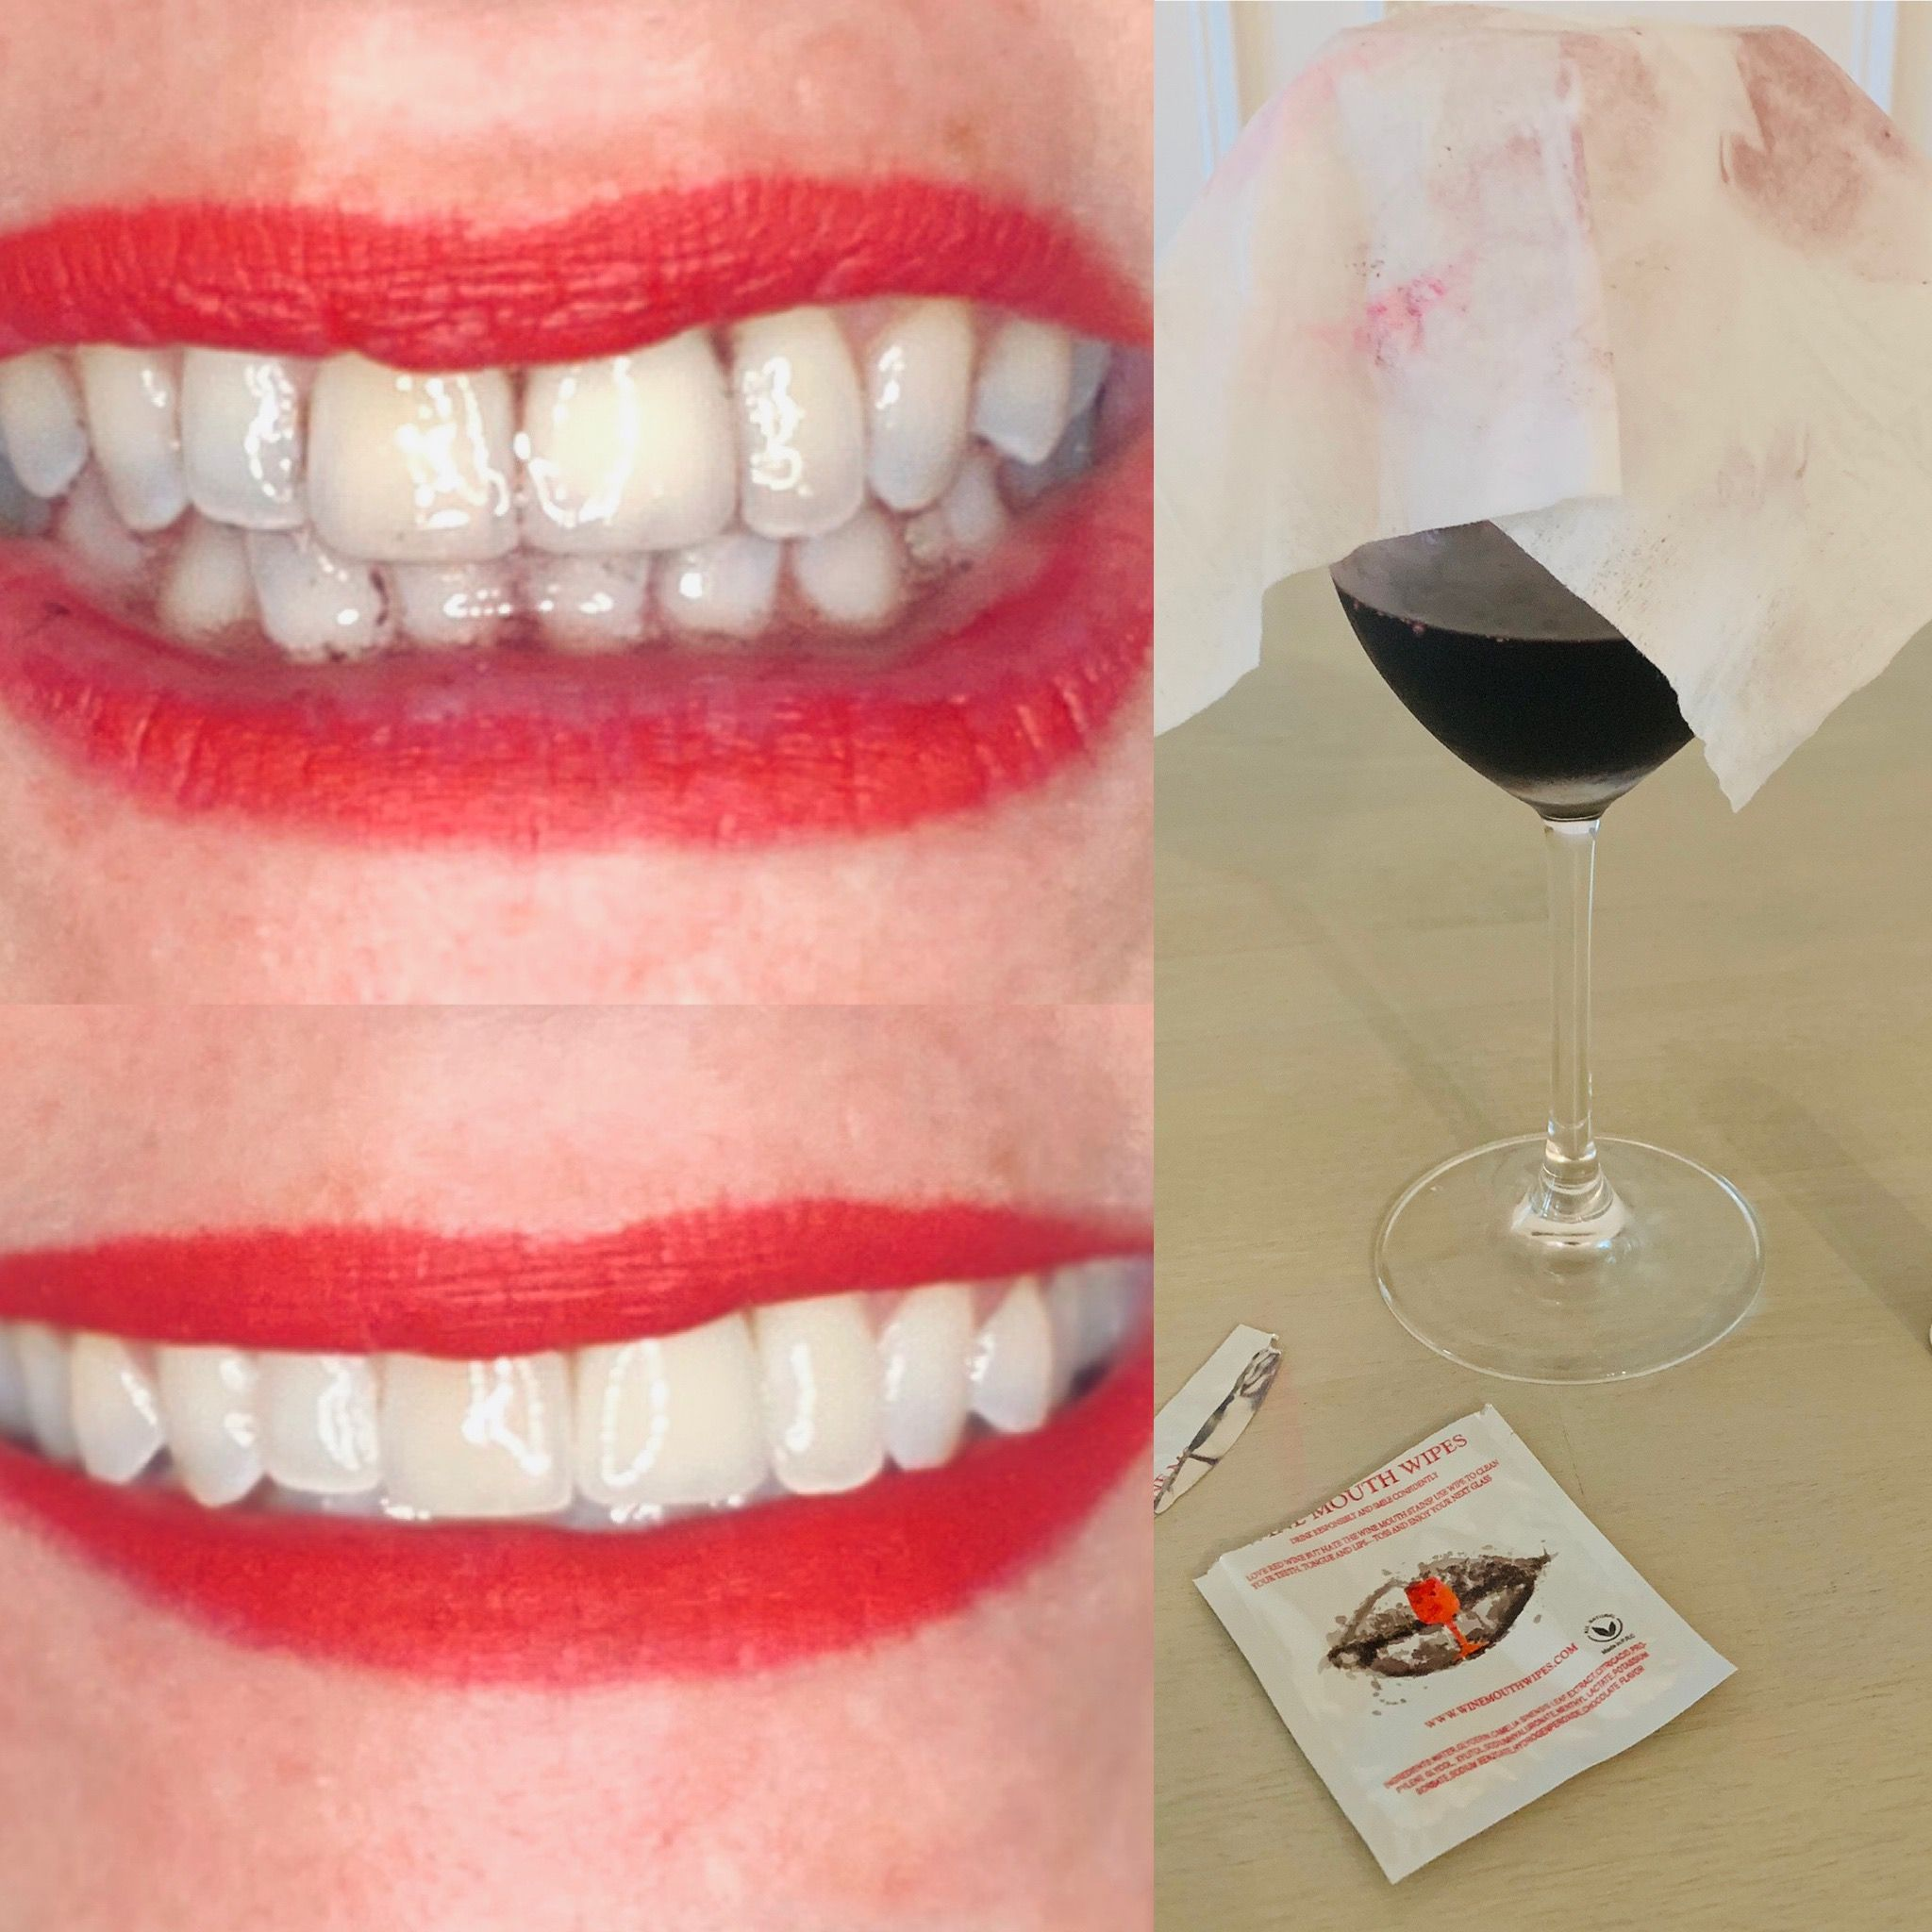 Teeth Whitener For Red Wine Stains Red Wine Stains Wine Stains Red Wine Stain Removal